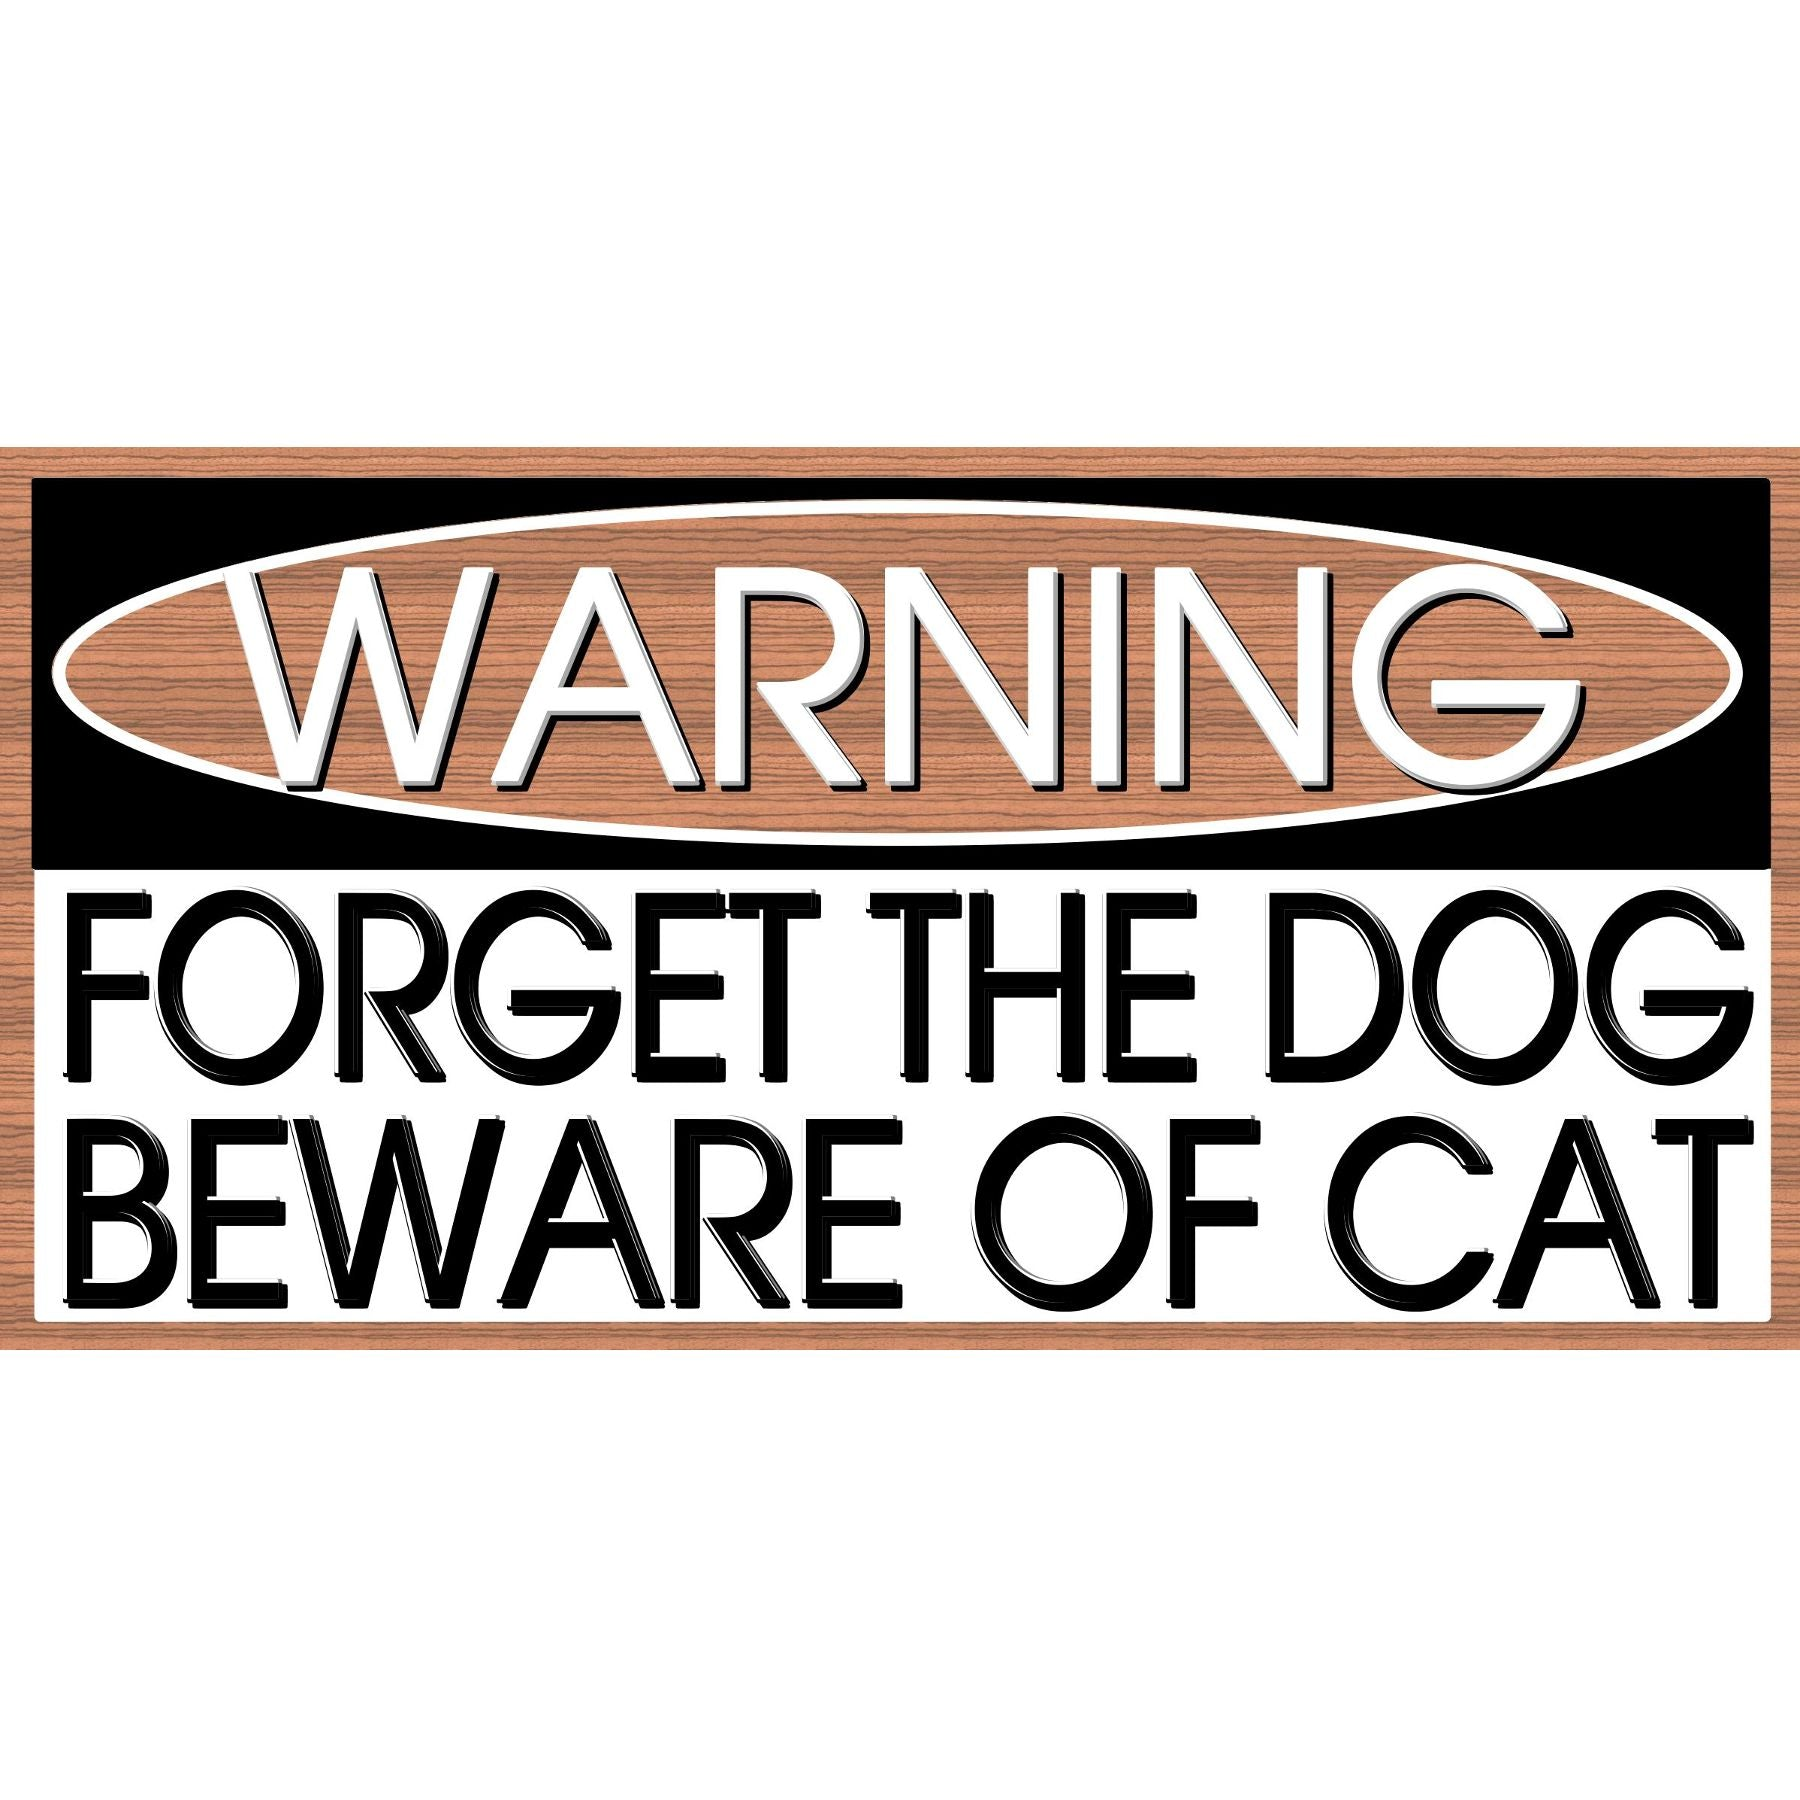 Dog Wood Signs -Forget the Dog Beware of Cat  GS 2758- Cat Sign